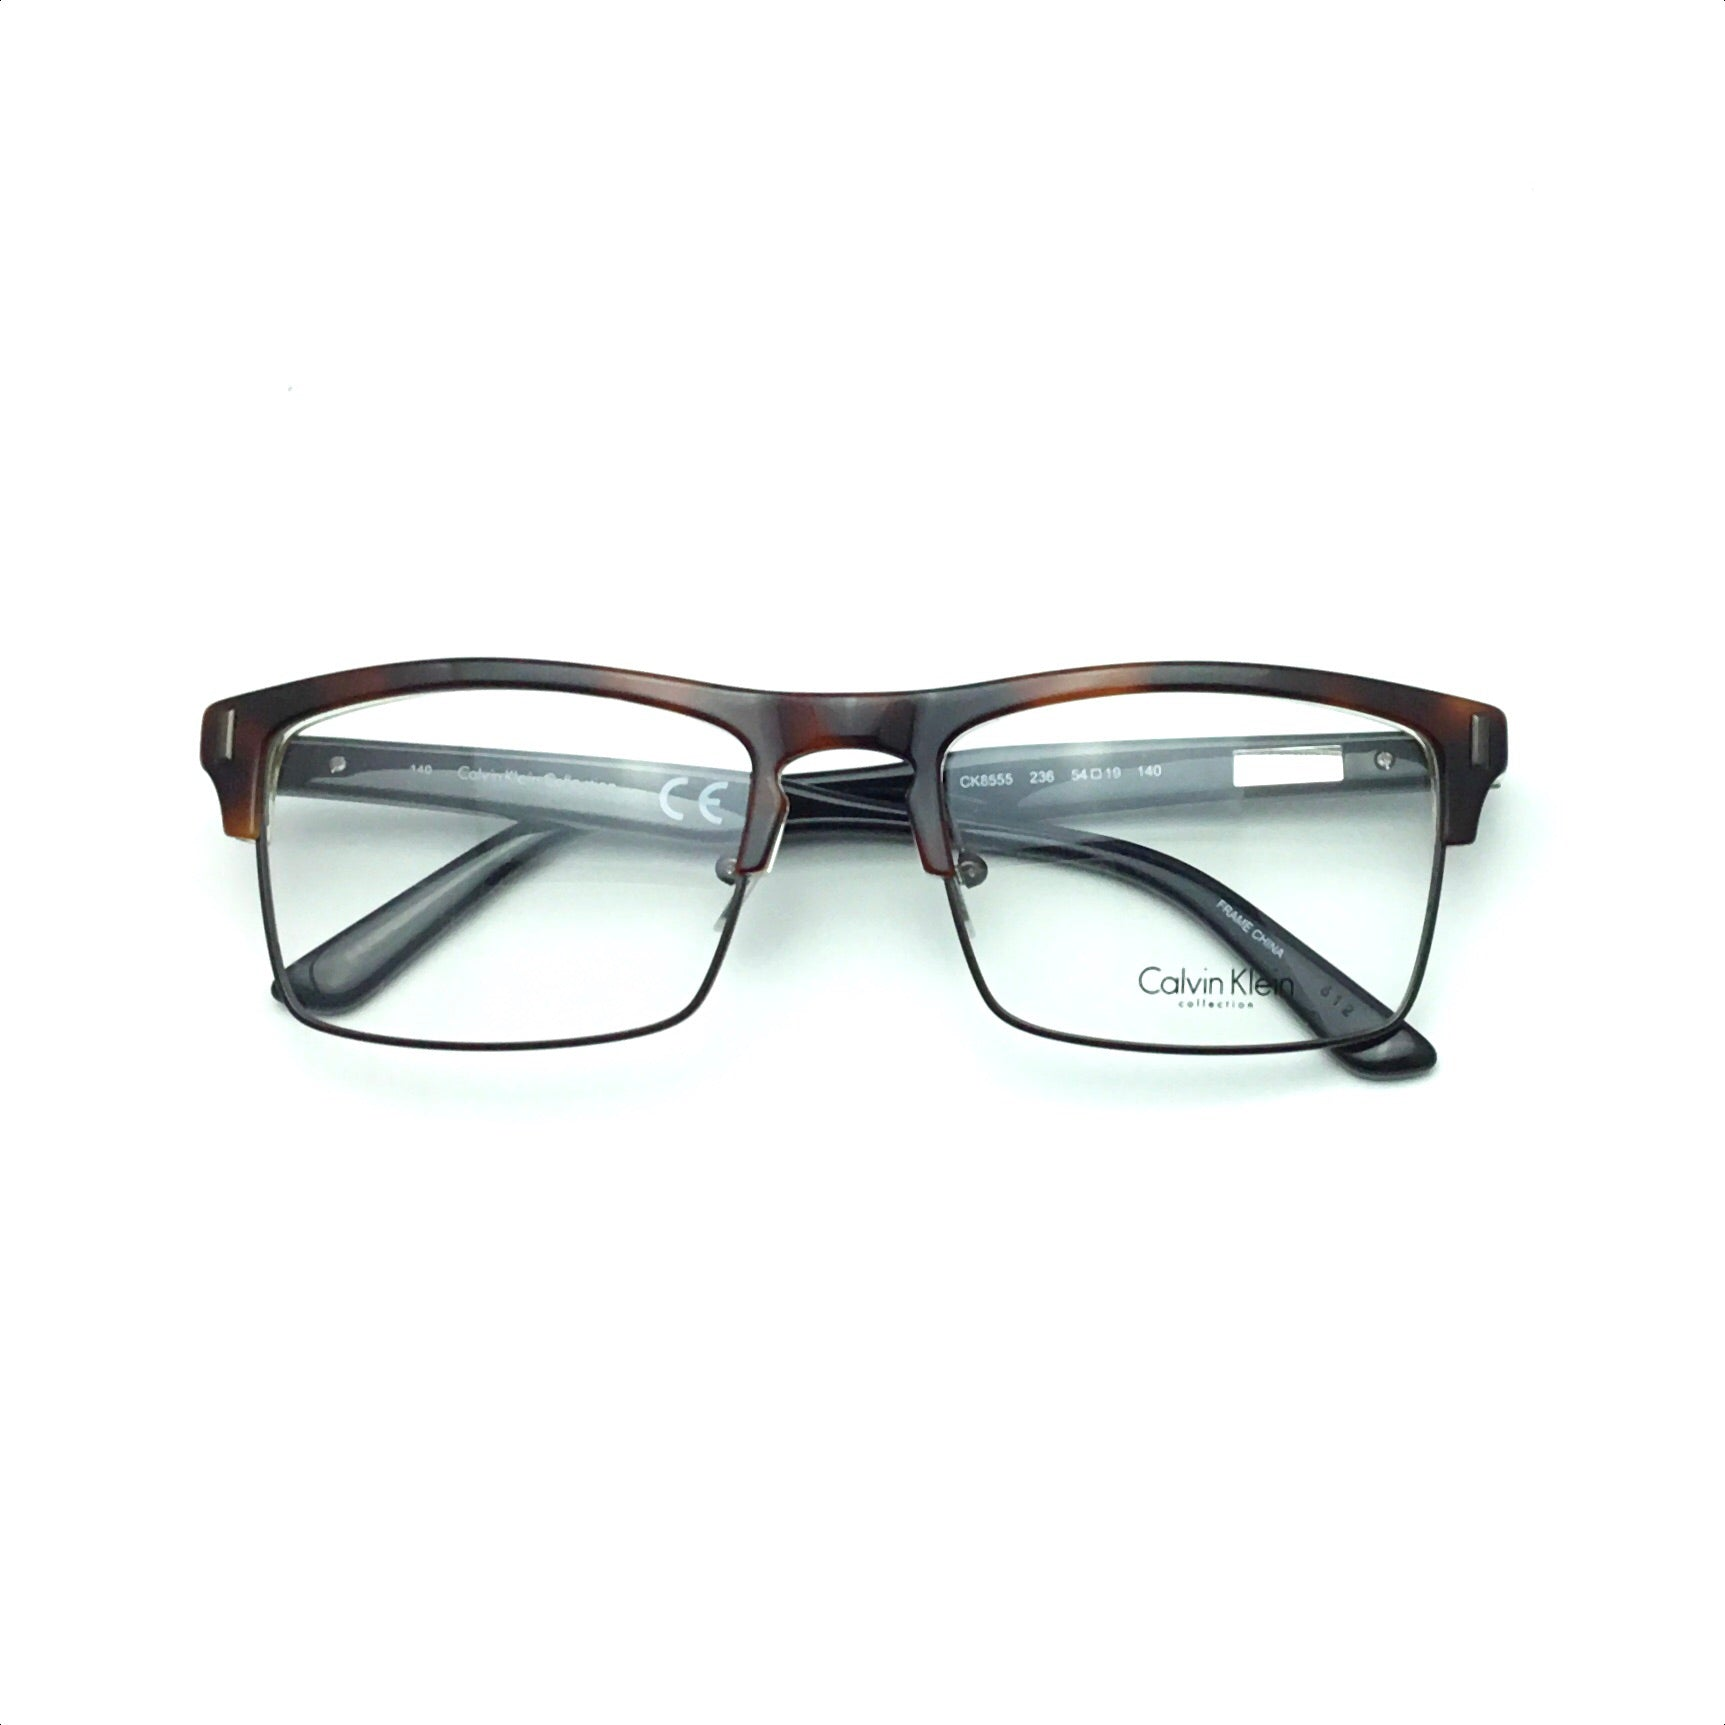 Calvin Klein Glasses $179 LARGE J8